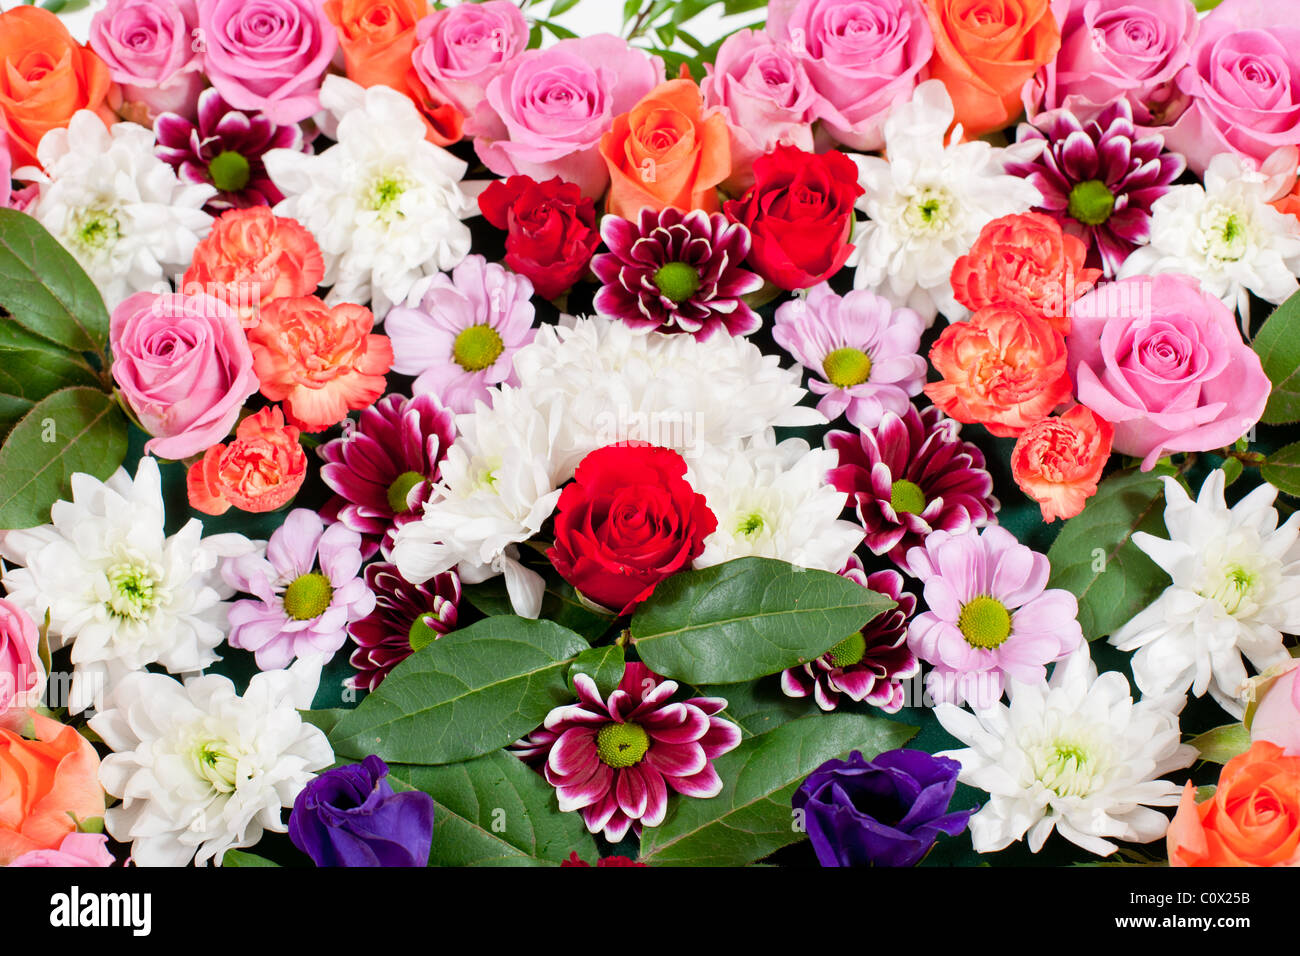 Heart shaped funeral flowers stock photo 34993207 alamy heart shaped funeral flowers izmirmasajfo